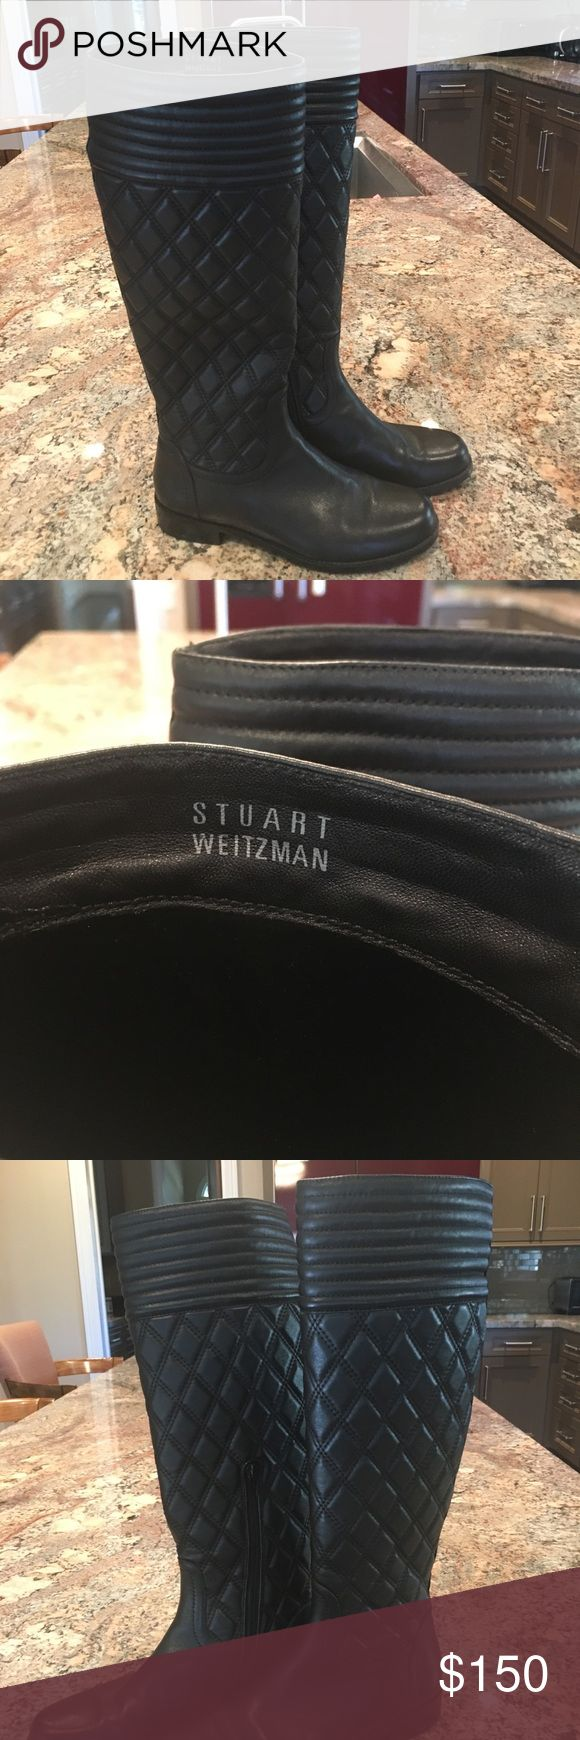 Stuart Weitzman Quilted Riding Boot I just hade to have these for my trip to Venice & Paris in 2014. And then there was aqua alta in Venice - we were trapped our hotel for a few hours and nearly missed our flight to Paris where the weather was slushy as well. I ended up only wearing my waterproof UGGS on that trip. And I've rarely worn them in Houston. They are nice to dress up my Lululemon leggings, but otherwise I wear my black Giueseppe Zanotti cowboy boots most often. These boots are in…